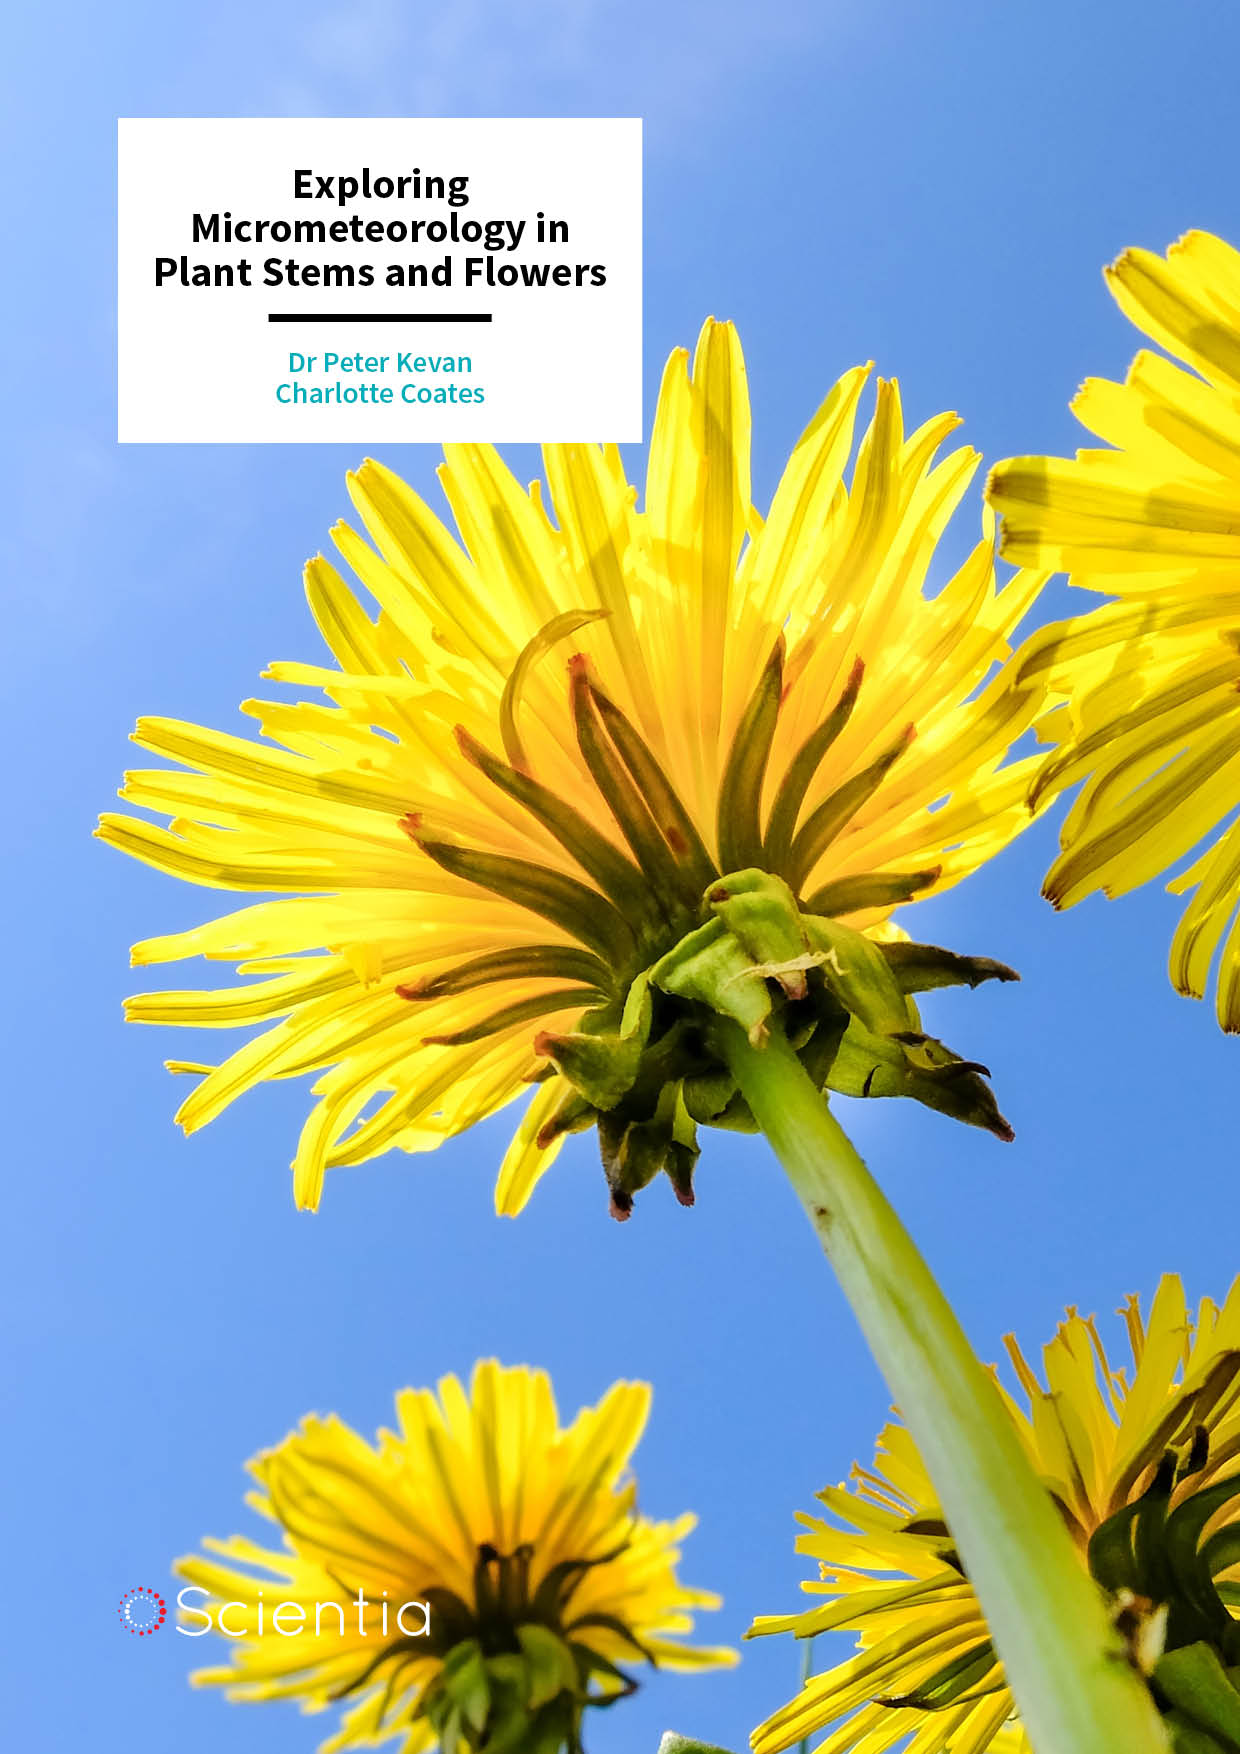 Dr Peter Kevan | Charlotte Coates – Exploring Micrometeorology in Plant Stems and Flowers